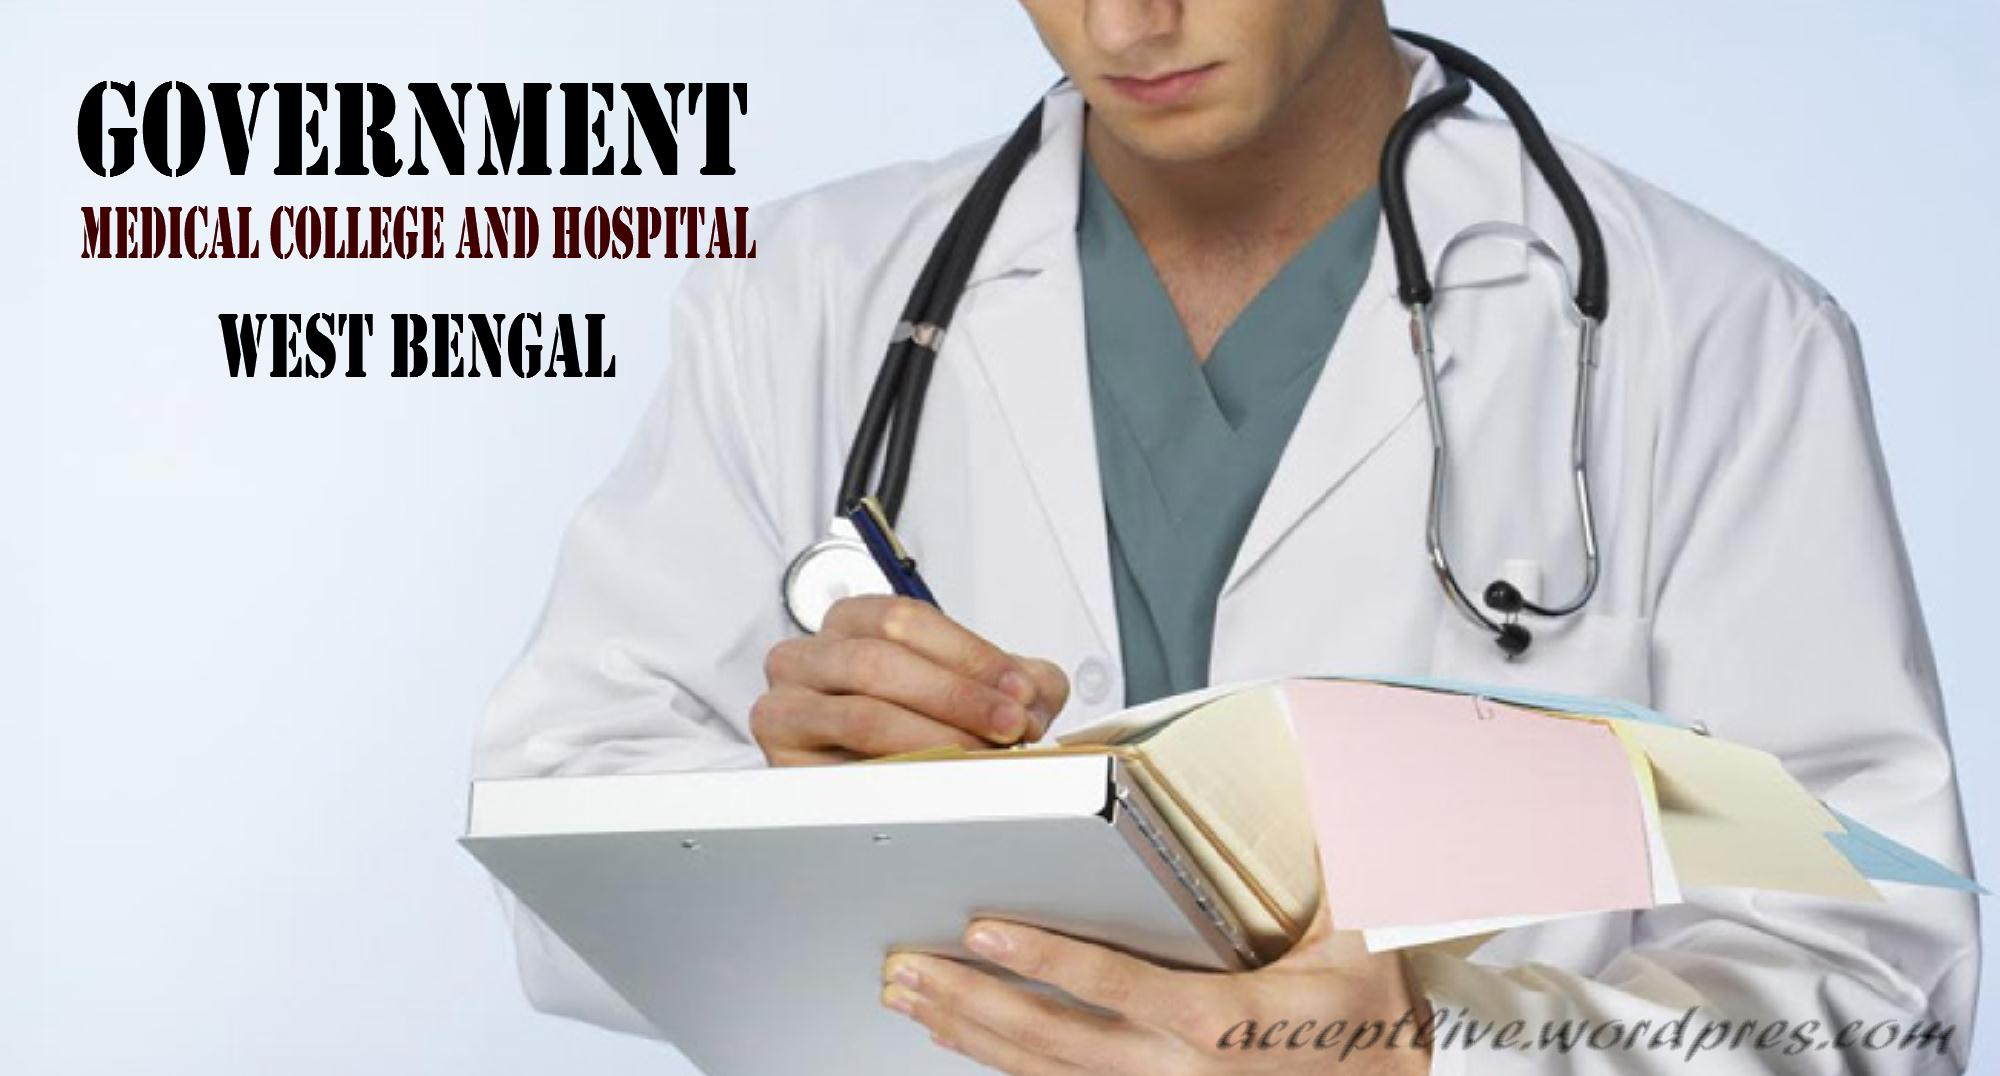 Government Medical Colleges and Hospital in West Bengal